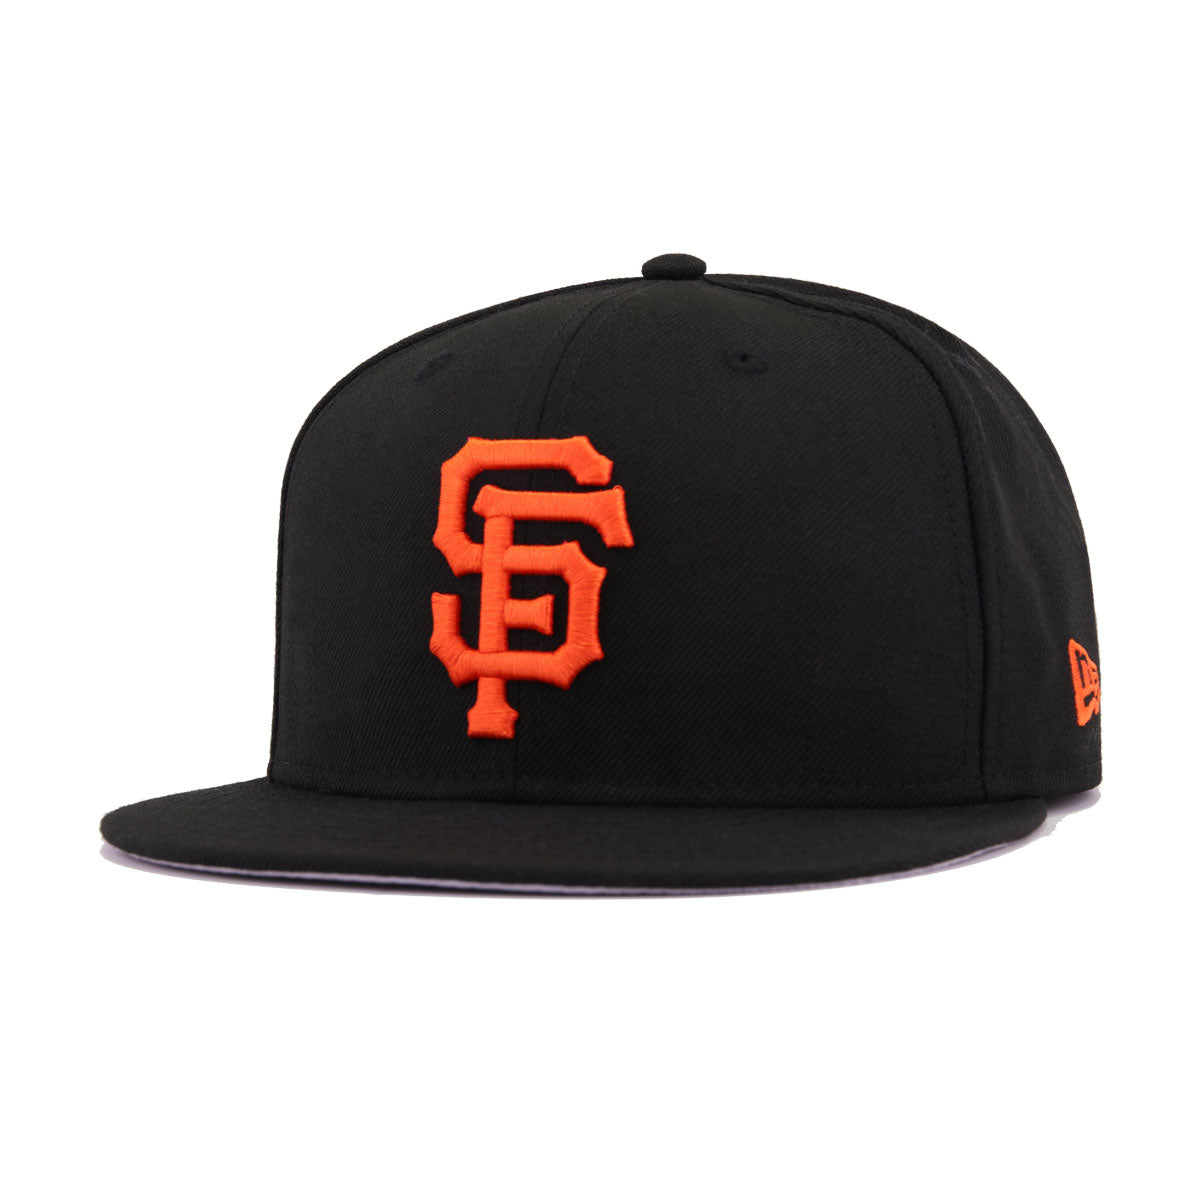 28511c8bc0ef76 San Francisco Giants Black Grilled Orange New Era 9Fifty Snapback